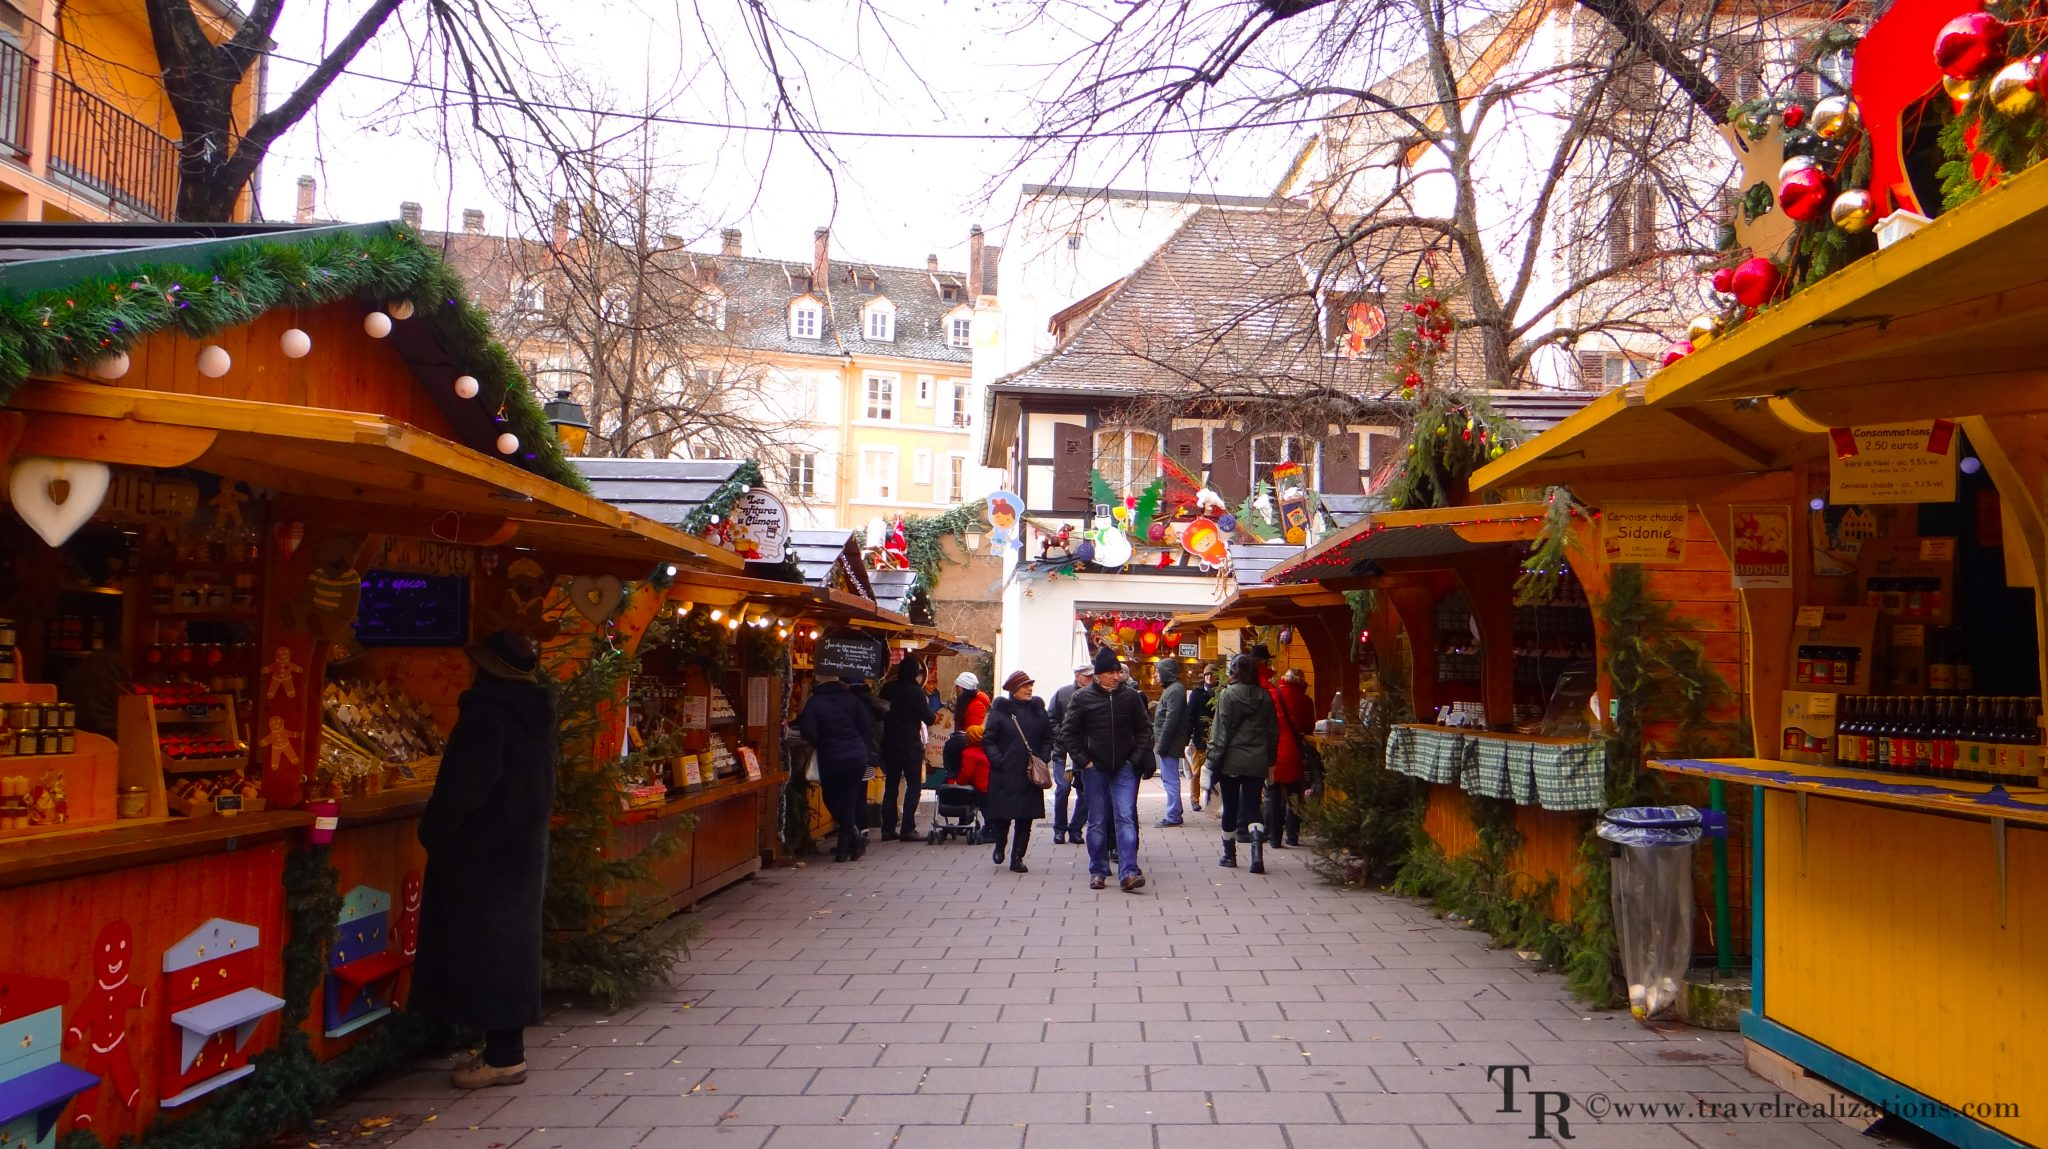 Christmas market in Strasbourg, France – the oldest and biggest in Europe!